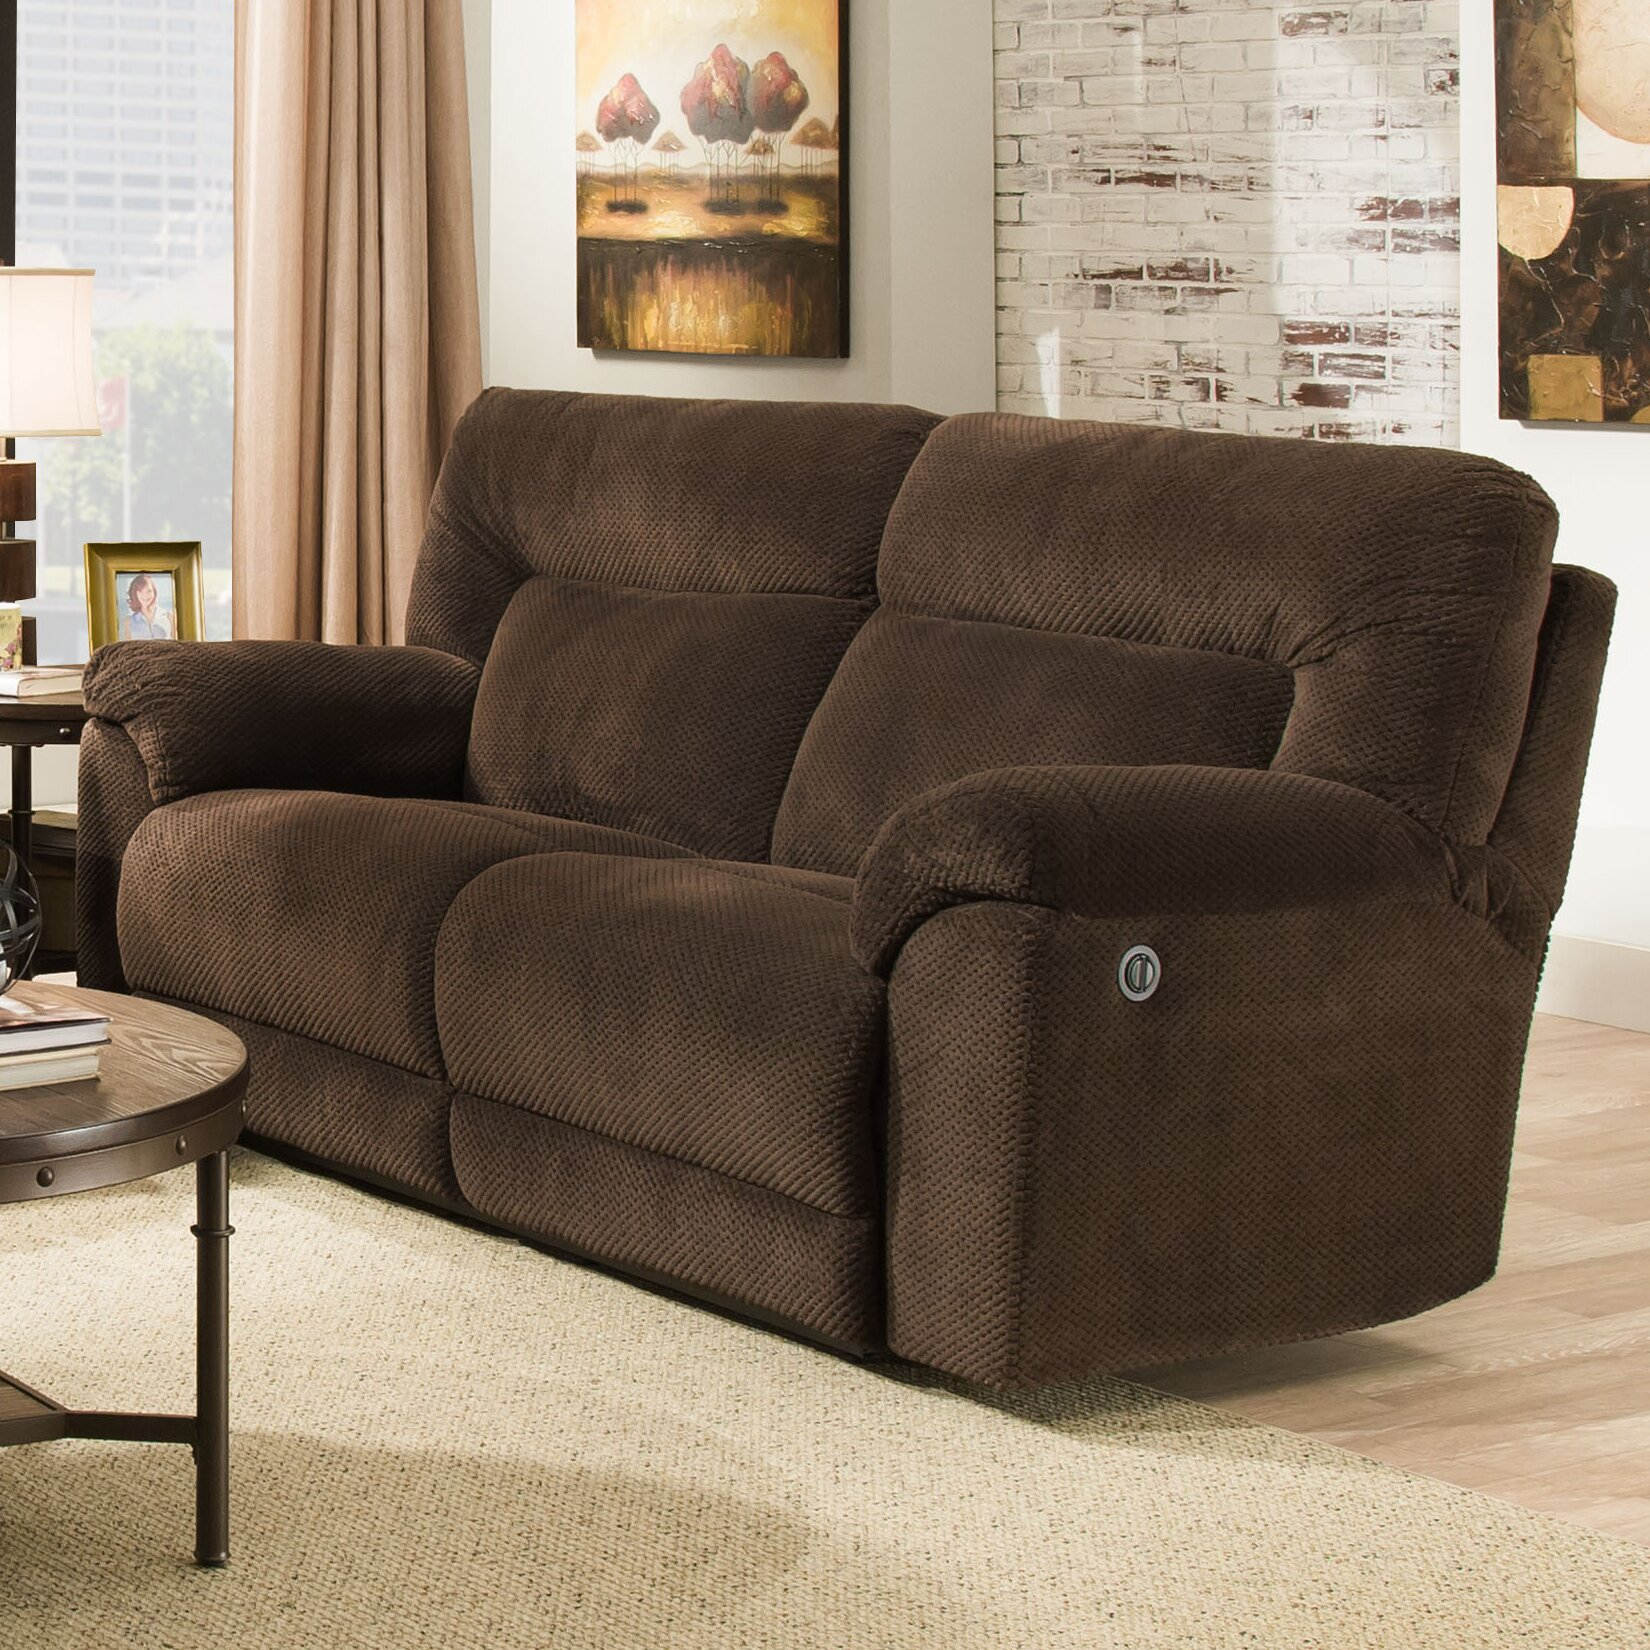 Simmons Upholstery Madeline Living Room Collection Reviews Wayfair